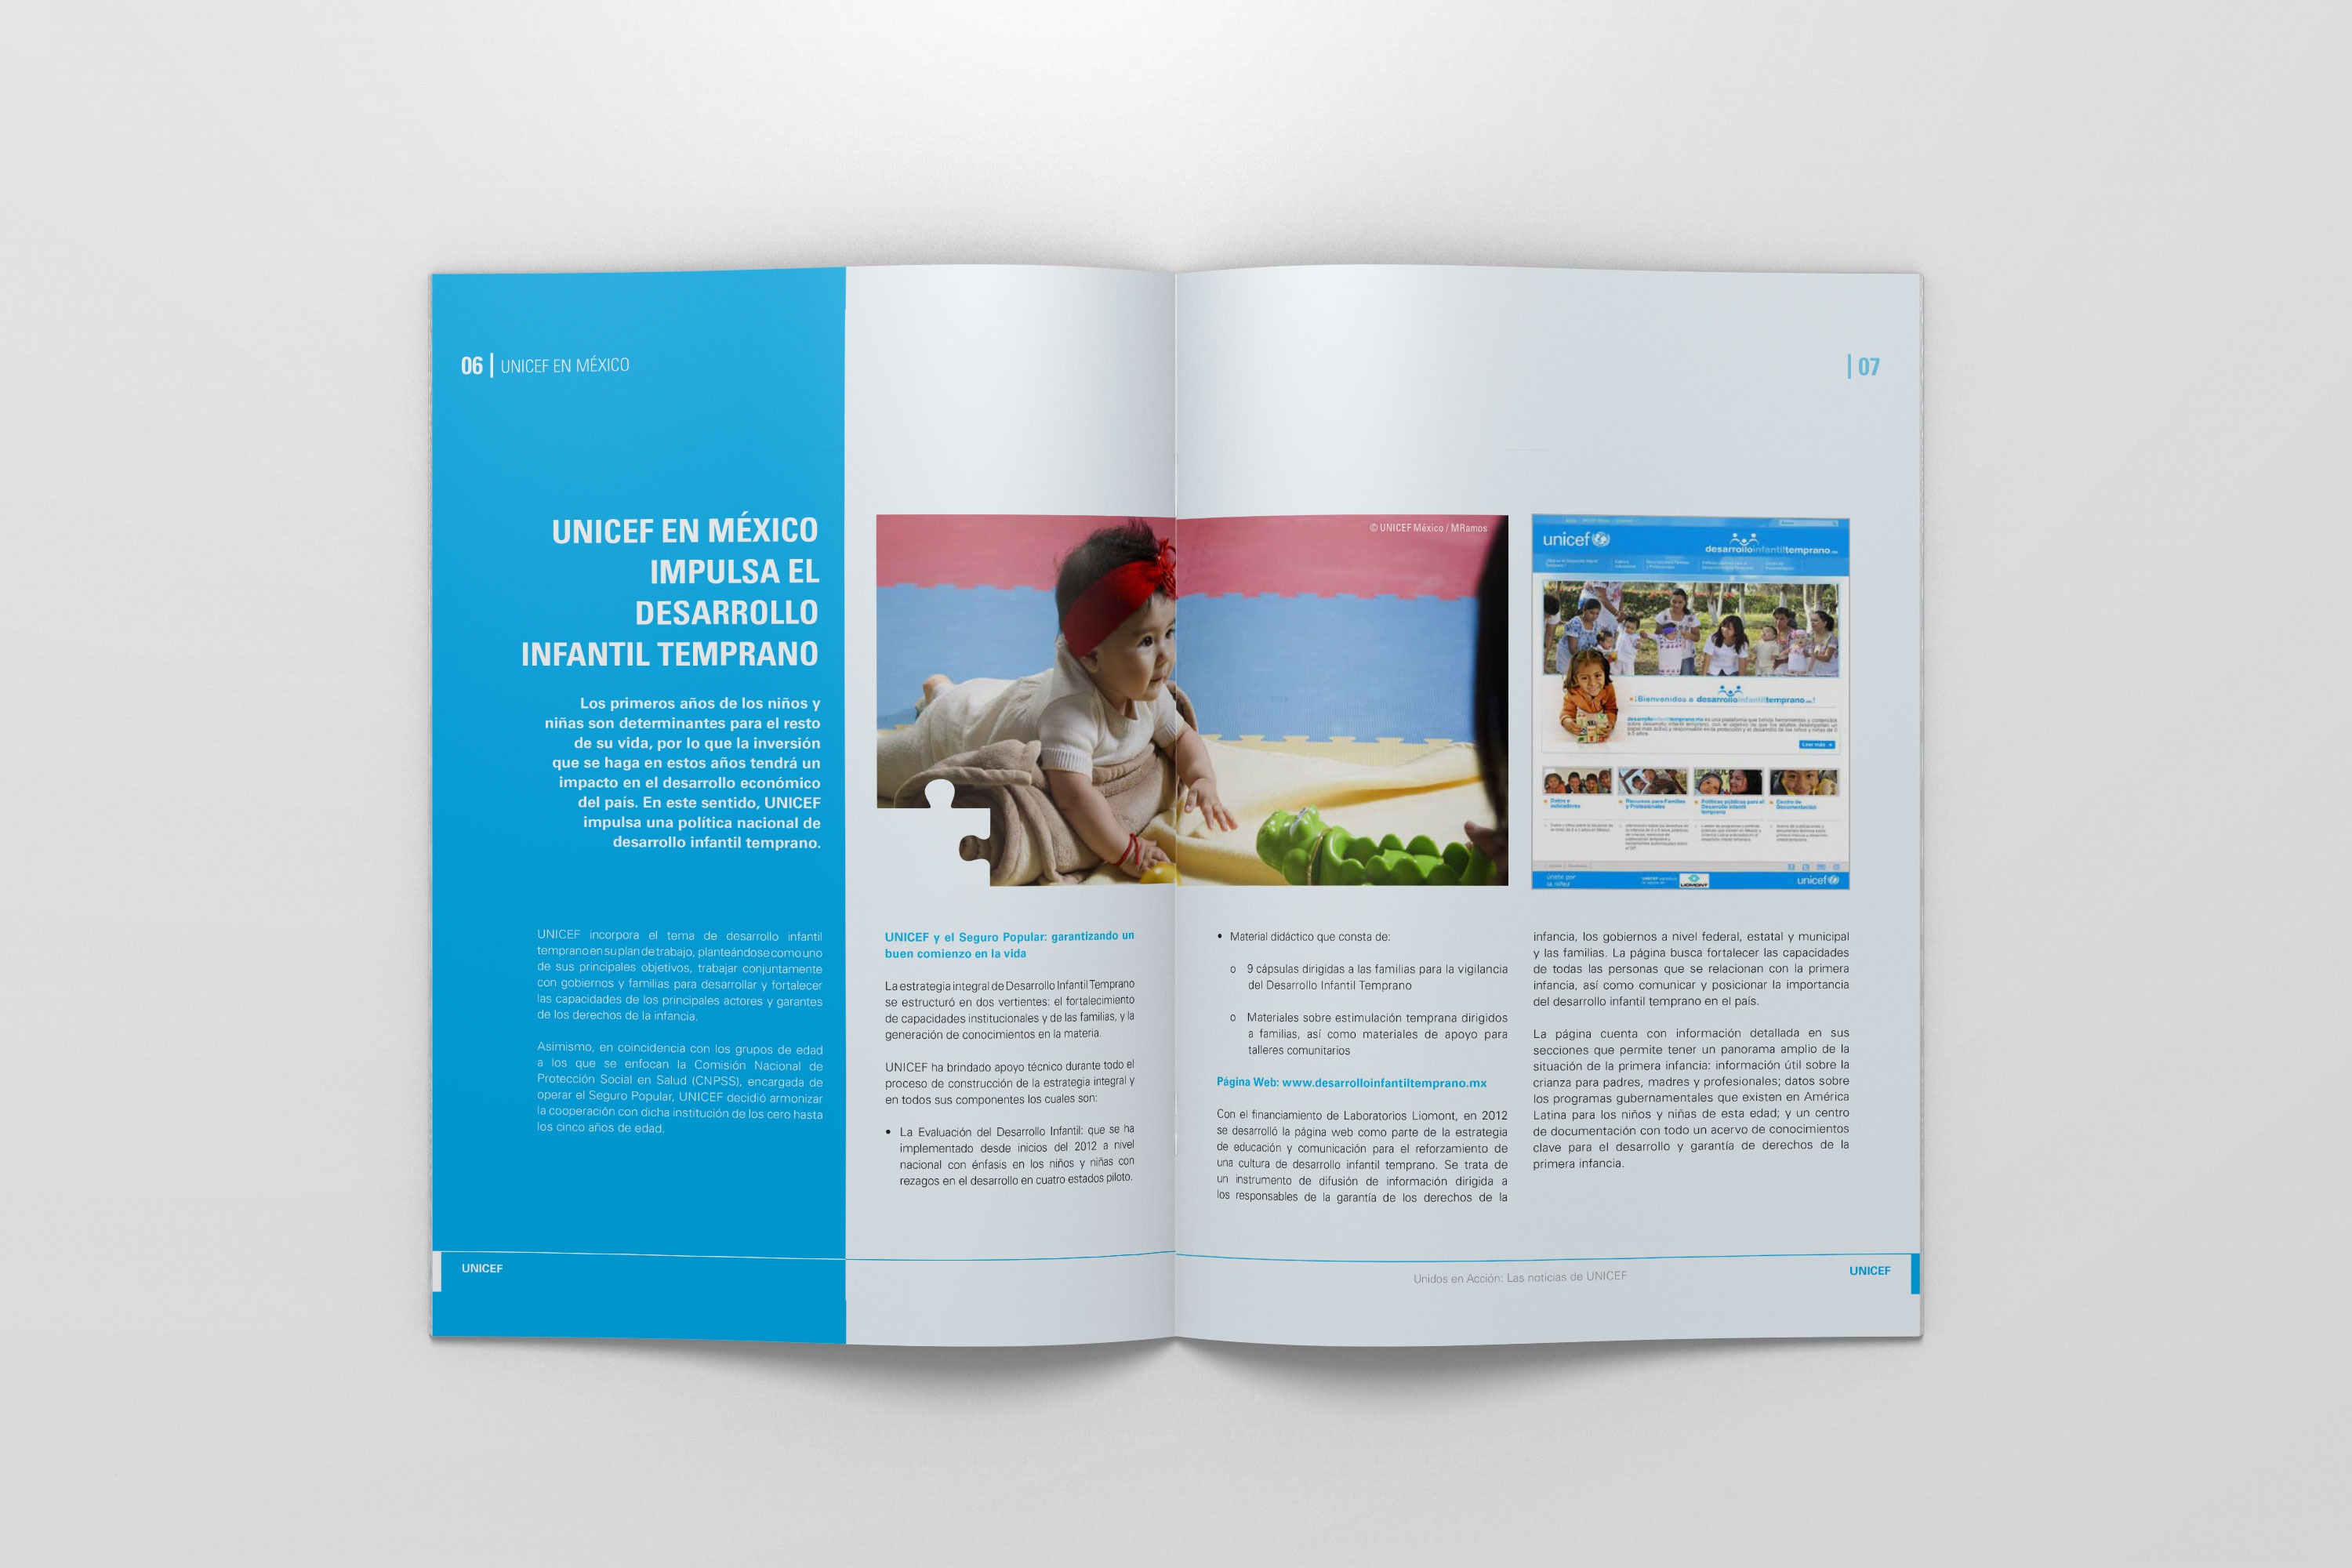 UNICEF-2-Informe-Anual-09